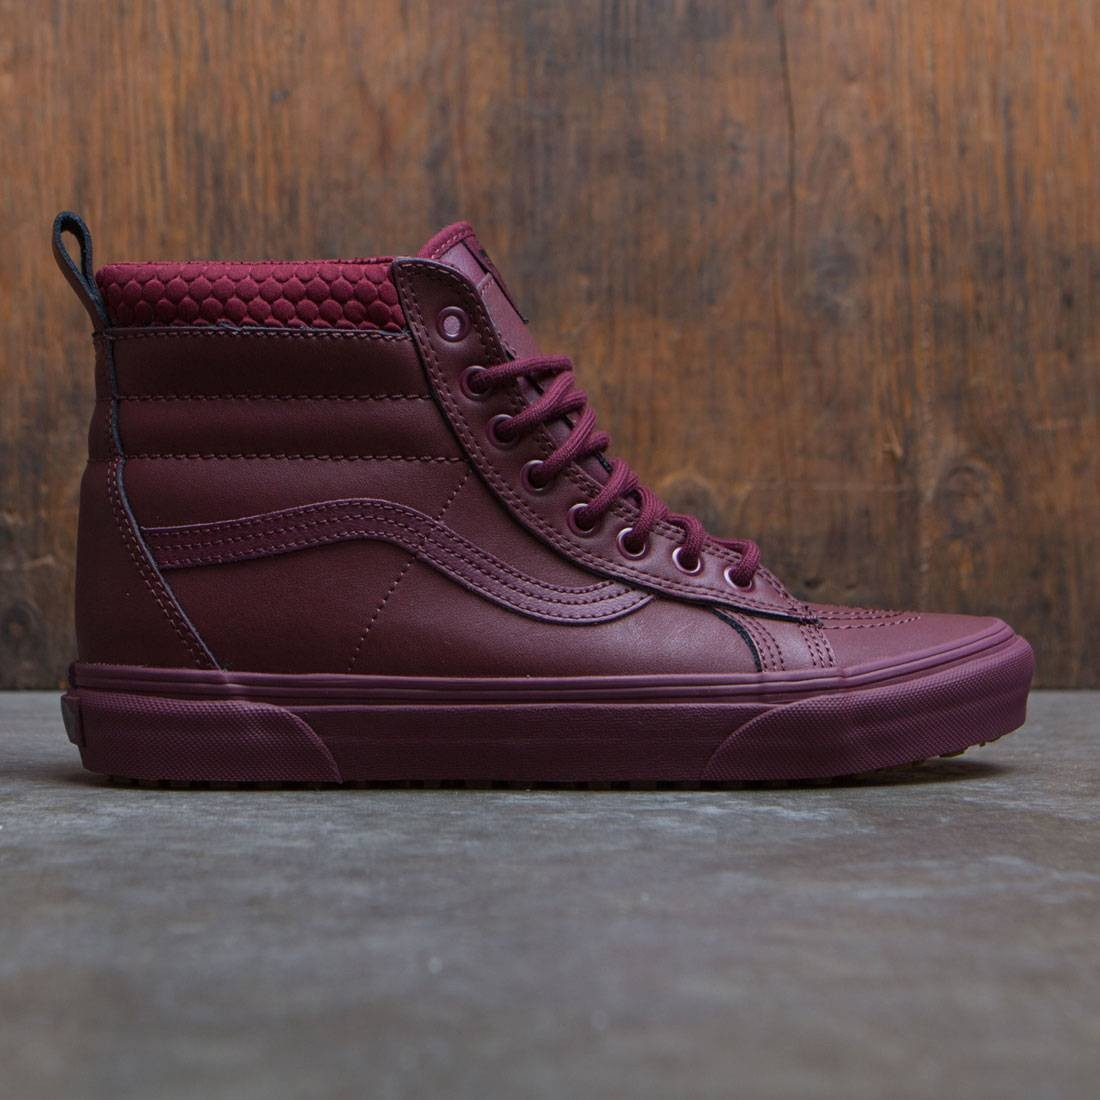 425a90e702 Vans Men SK8-Hi MTE burgundy port royale